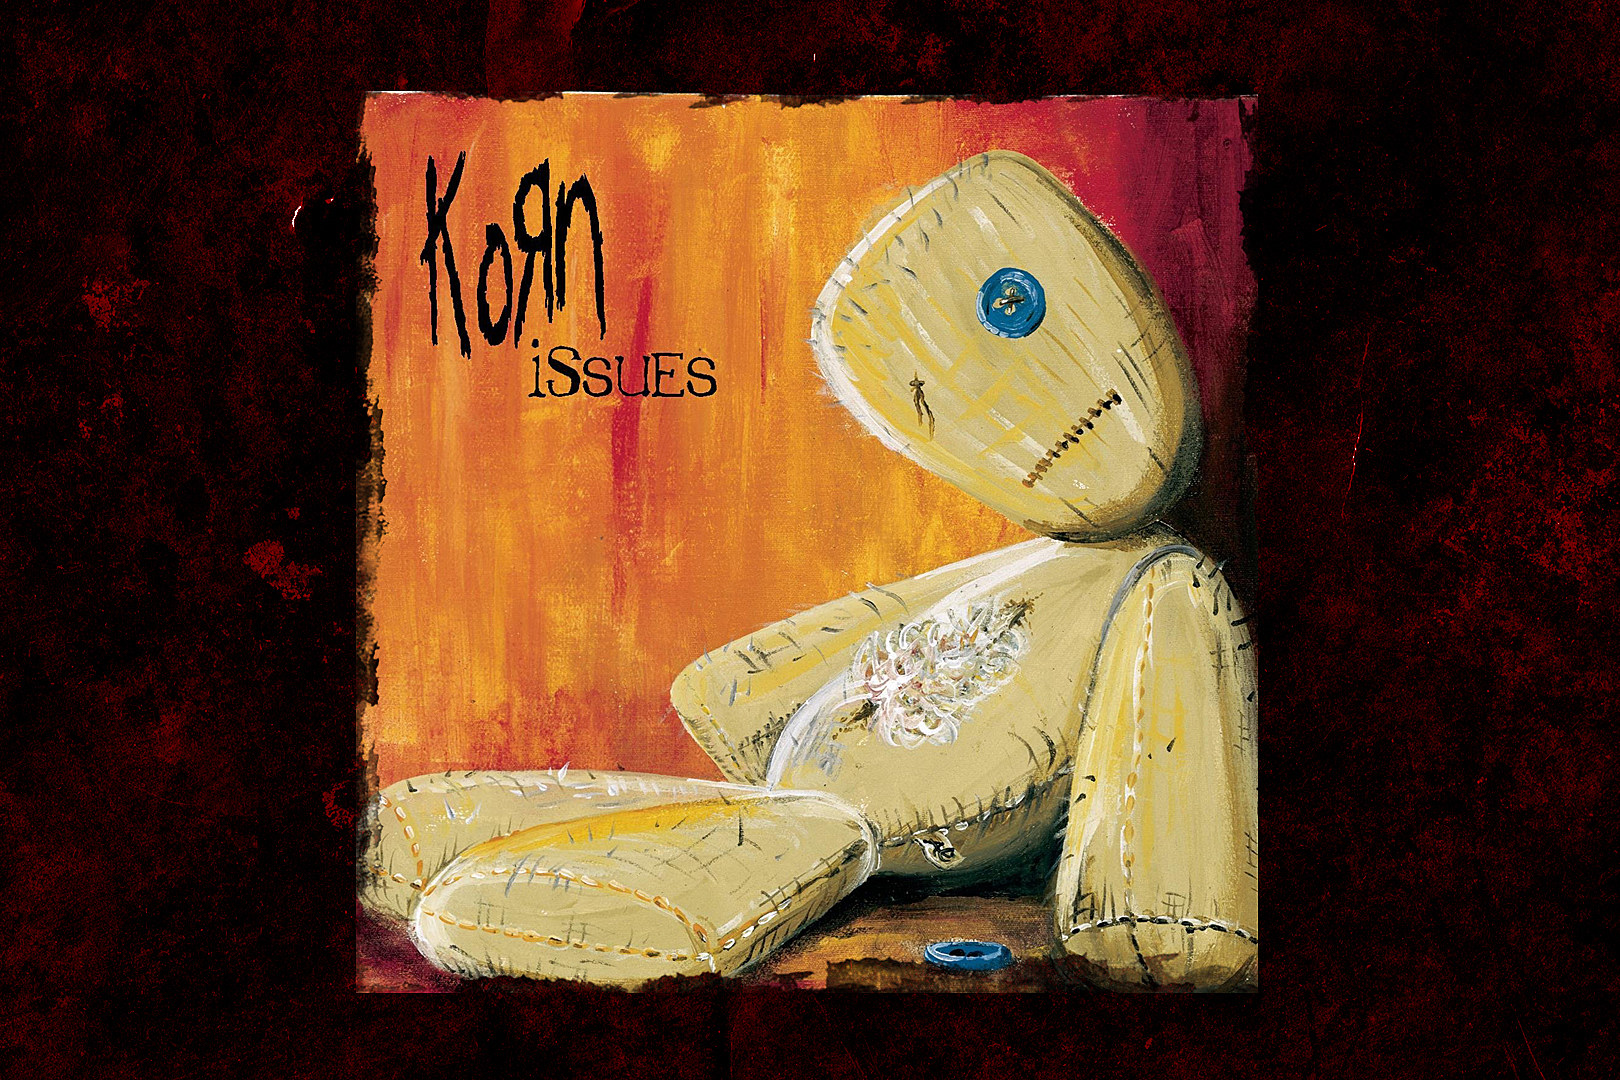 20 Years Ago: Korn Followed Their Own Lead With 'Issues'